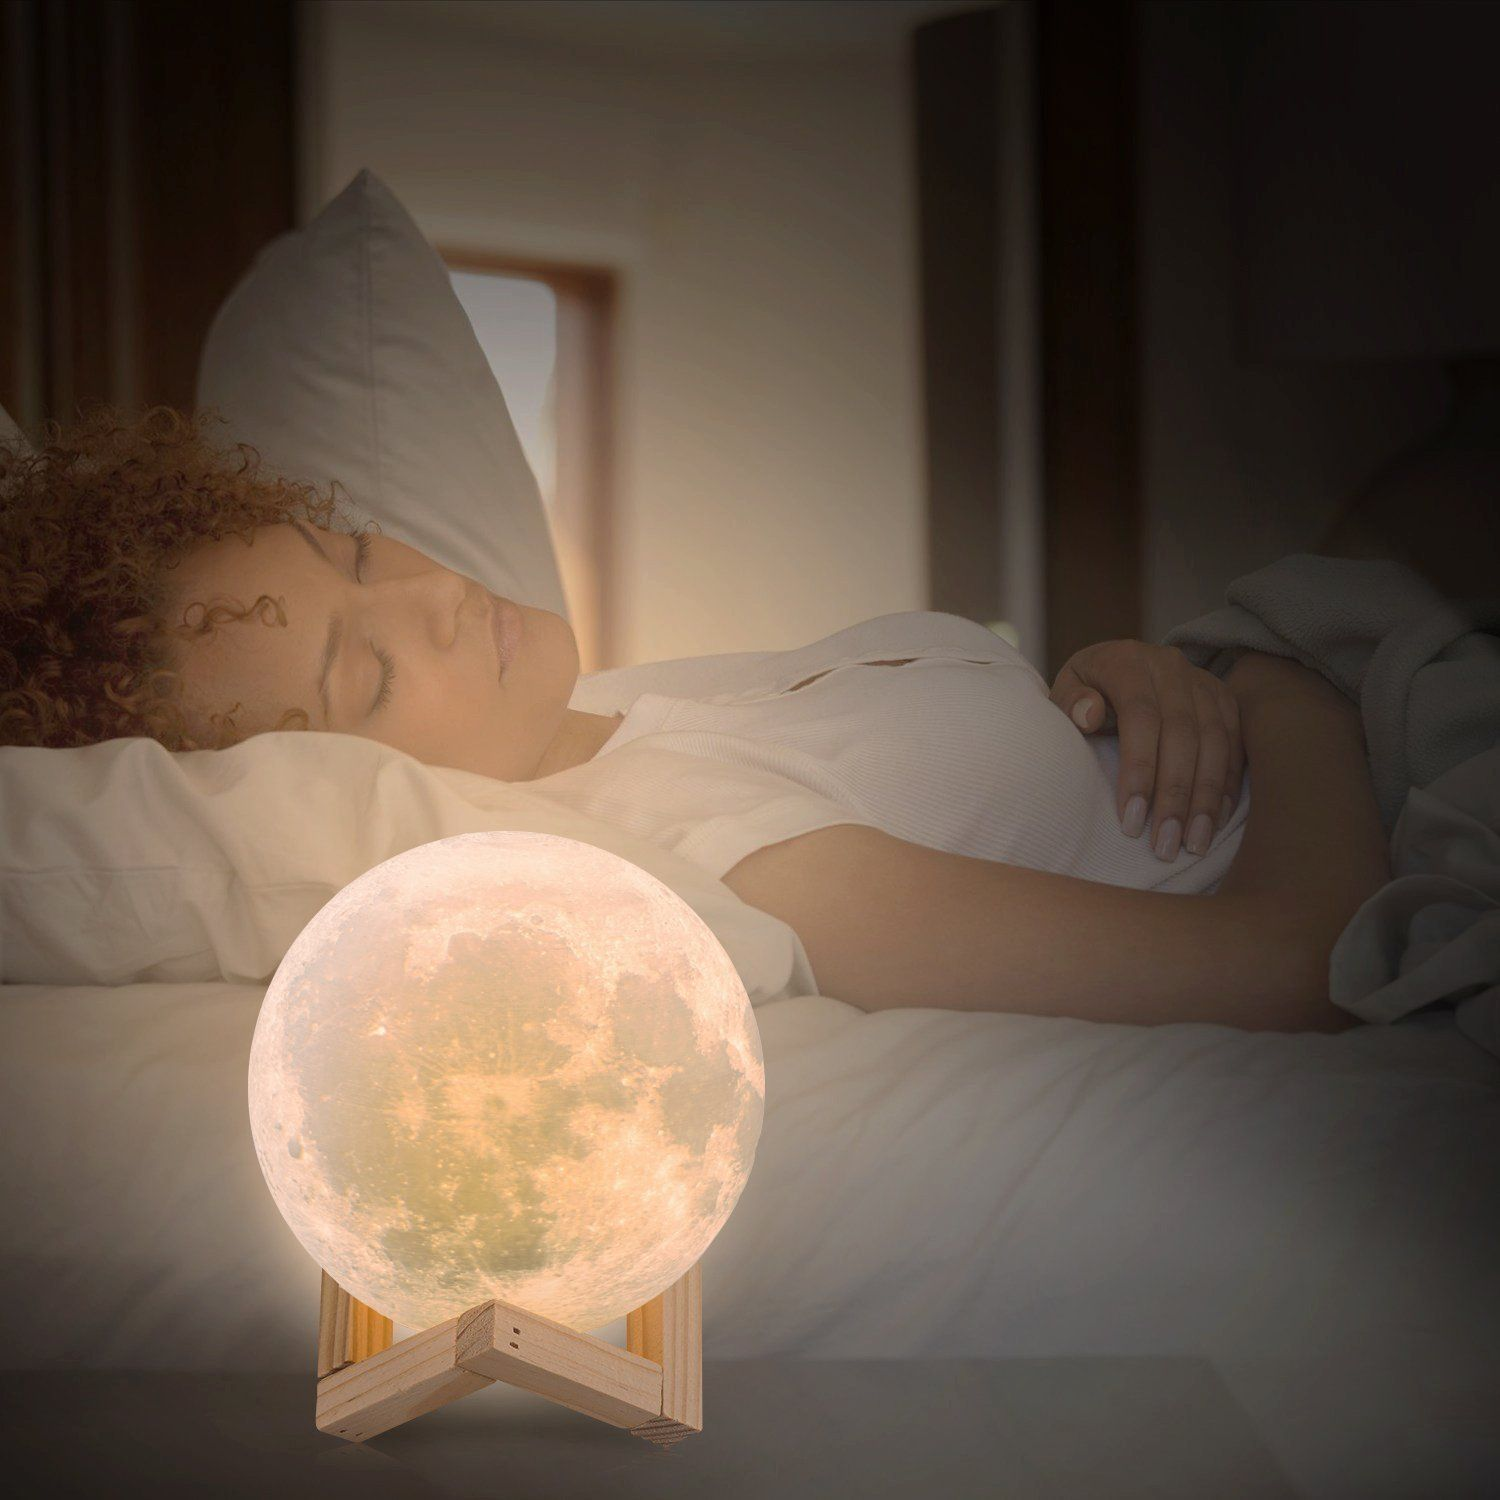 Lol lighting luna moon night light lamps 3d touch sensor led lol lighting luna moon night light lamps 3d touch sensor led bedside table lamp dimmable baby nursery lamp rechargeable battery operated desk lamp for kid geotapseo Choice Image